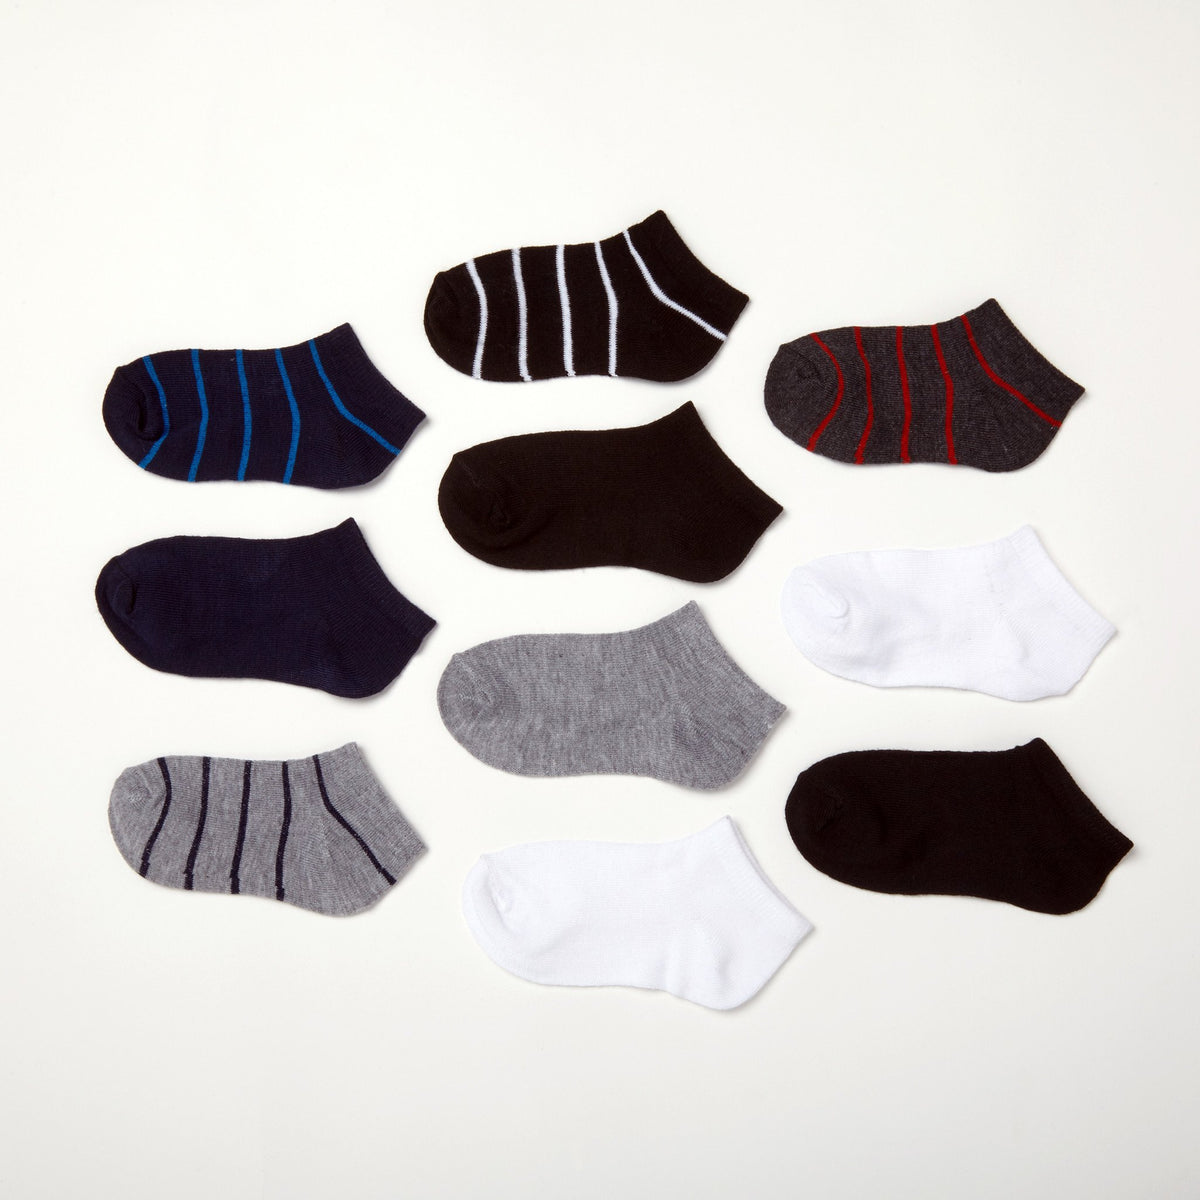 Boys' Solids + Stripes 10-Pack Low Cut Socks 4-6.5